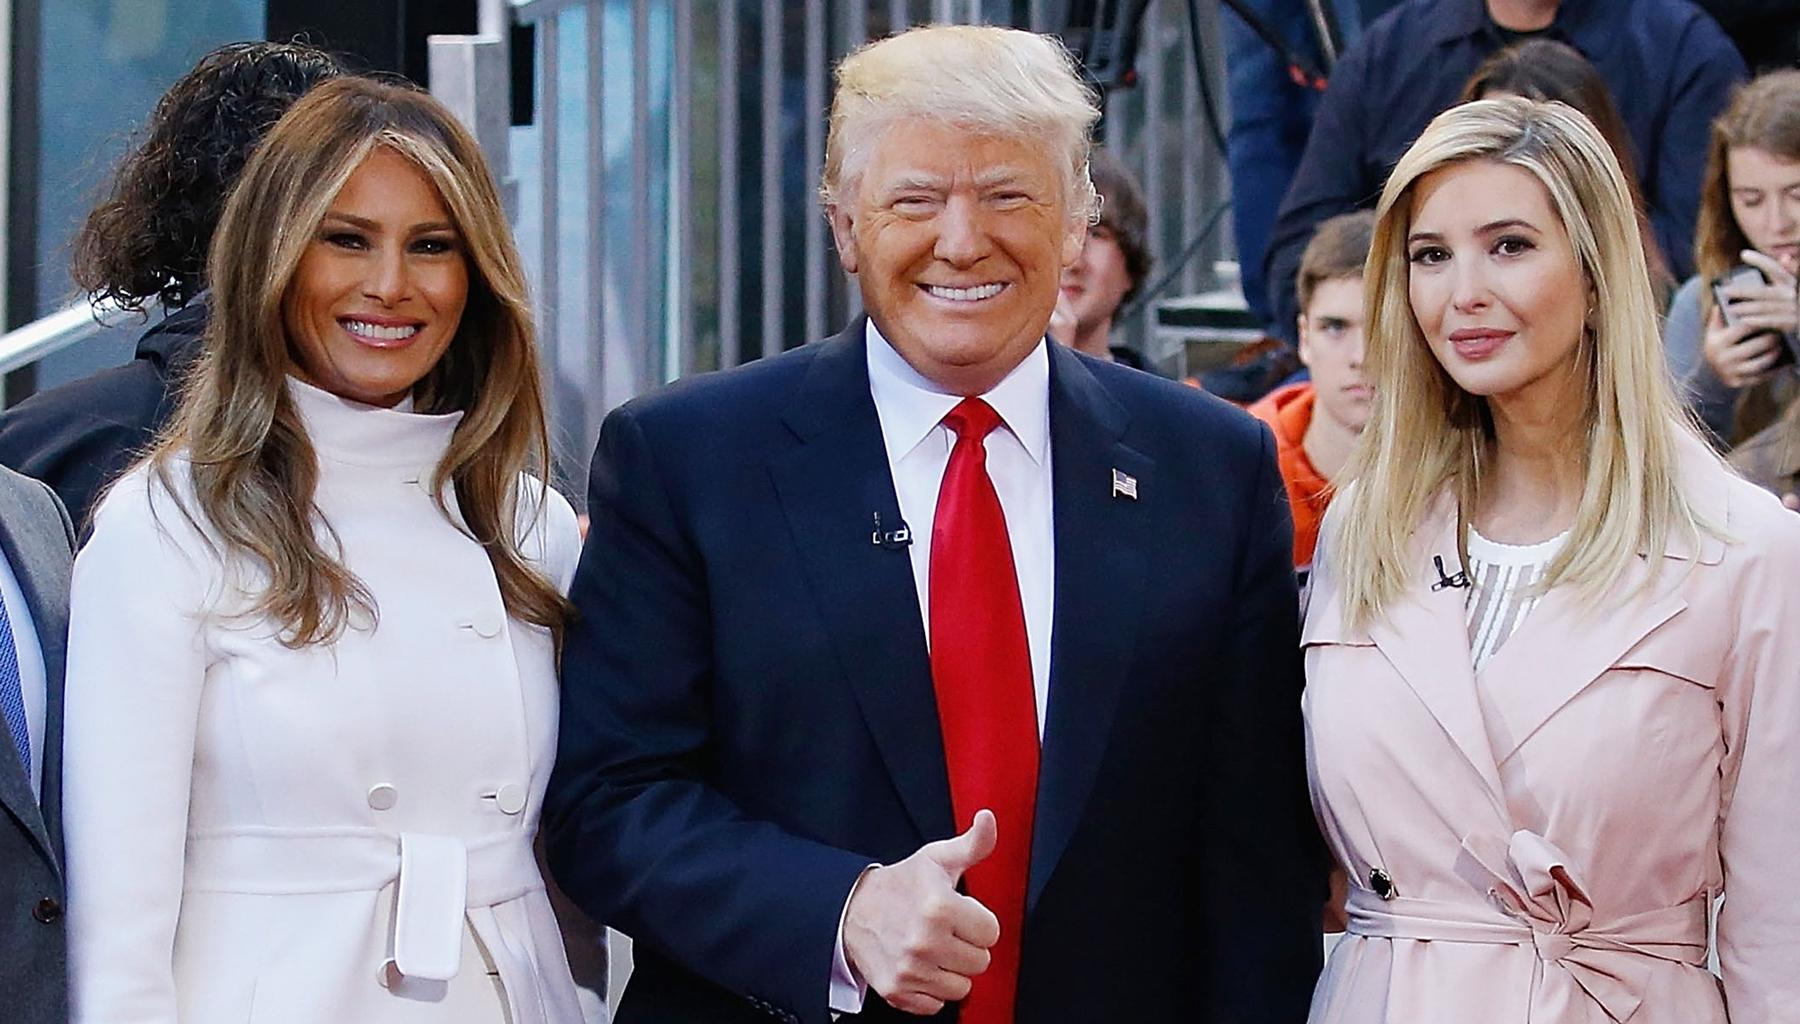 Donald Trump Throws  Ivanka And Melania Trump Under The Bus -- The Women Never Told Him To Stop The Racist Chants Against Ilhan Omar